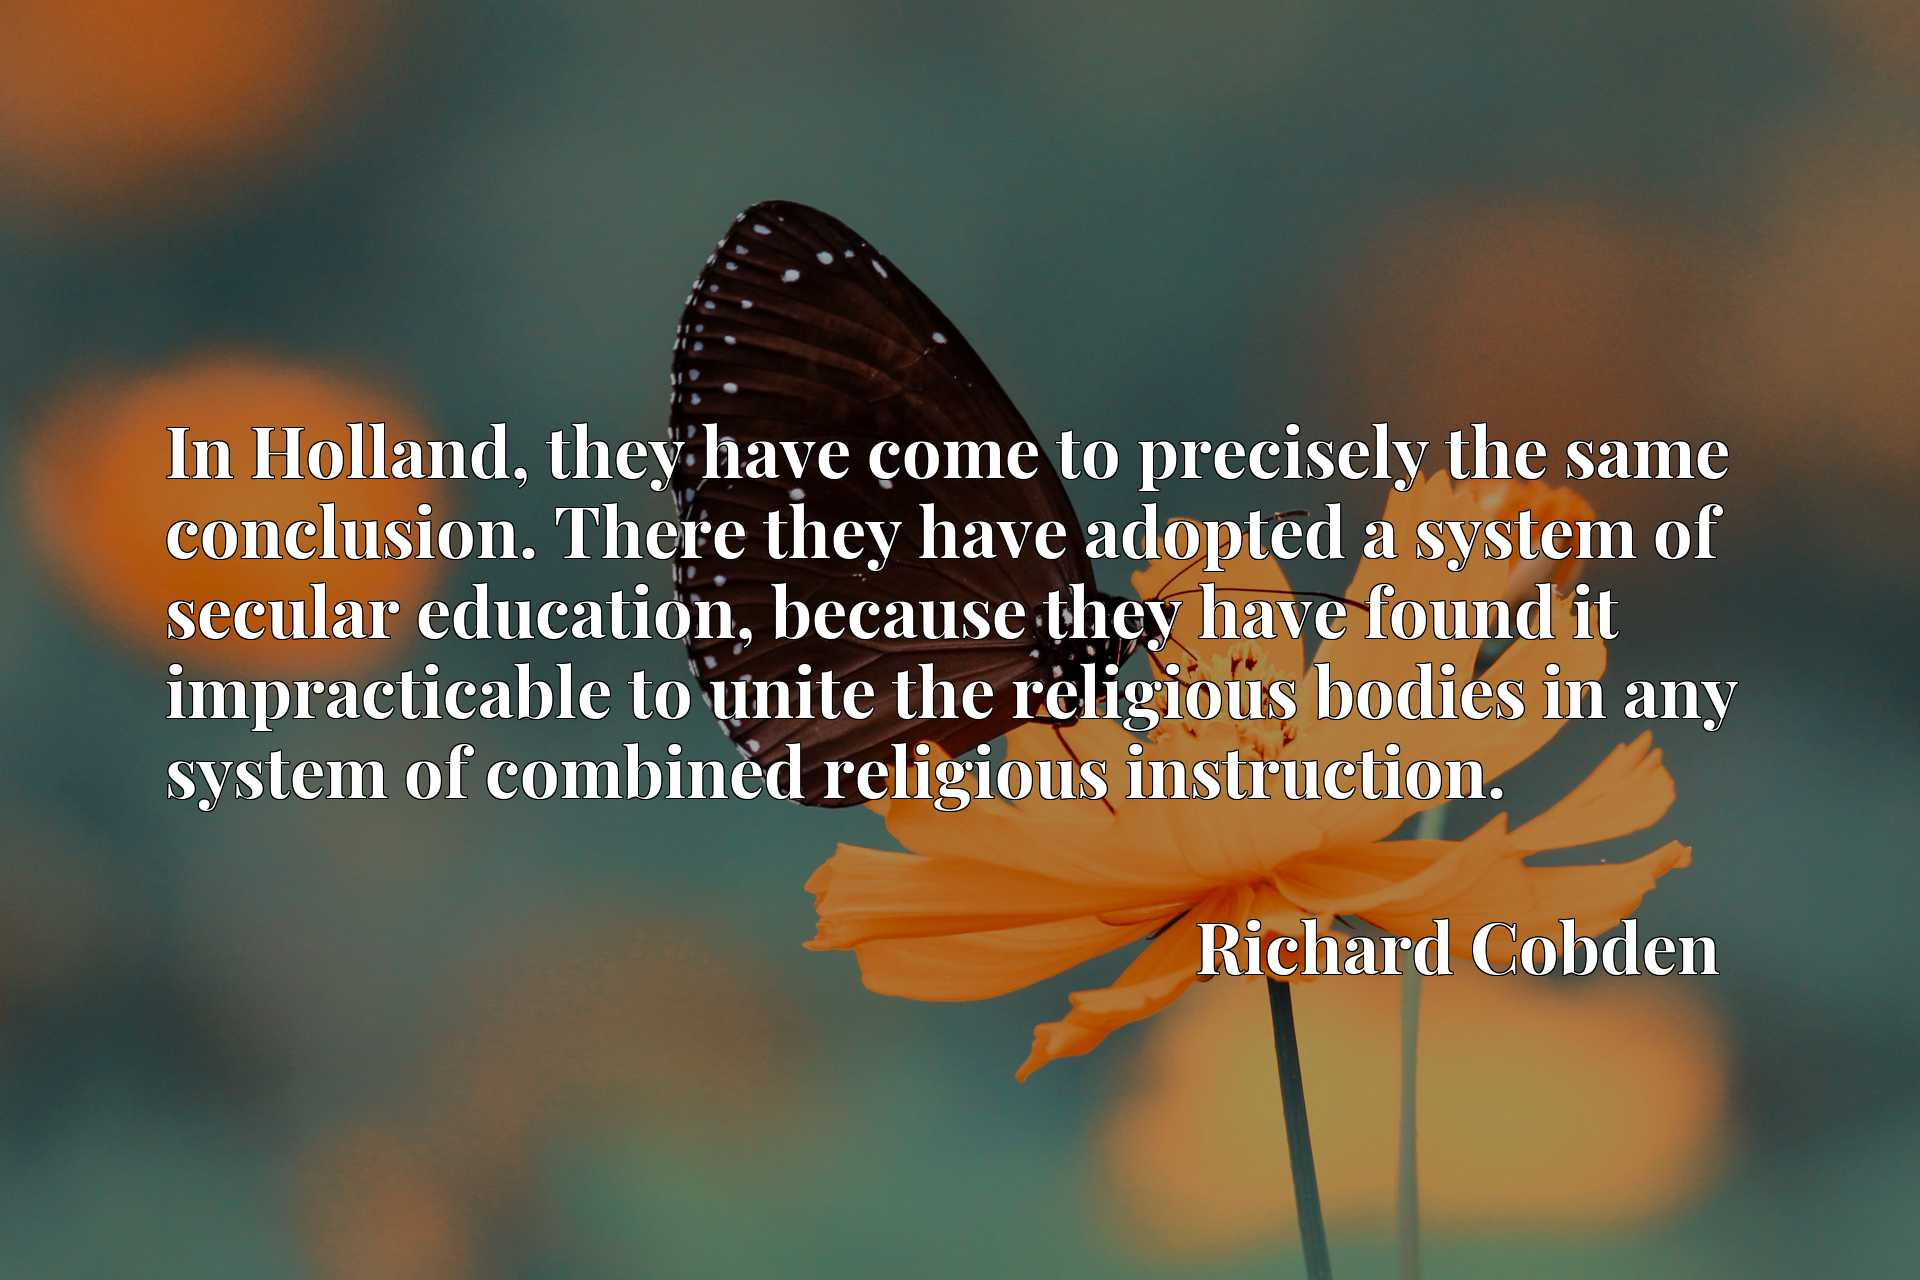 In Holland, they have come to precisely the same conclusion. There they have adopted a system of secular education, because they have found it impracticable to unite the religious bodies in any system of combined religious instruction.